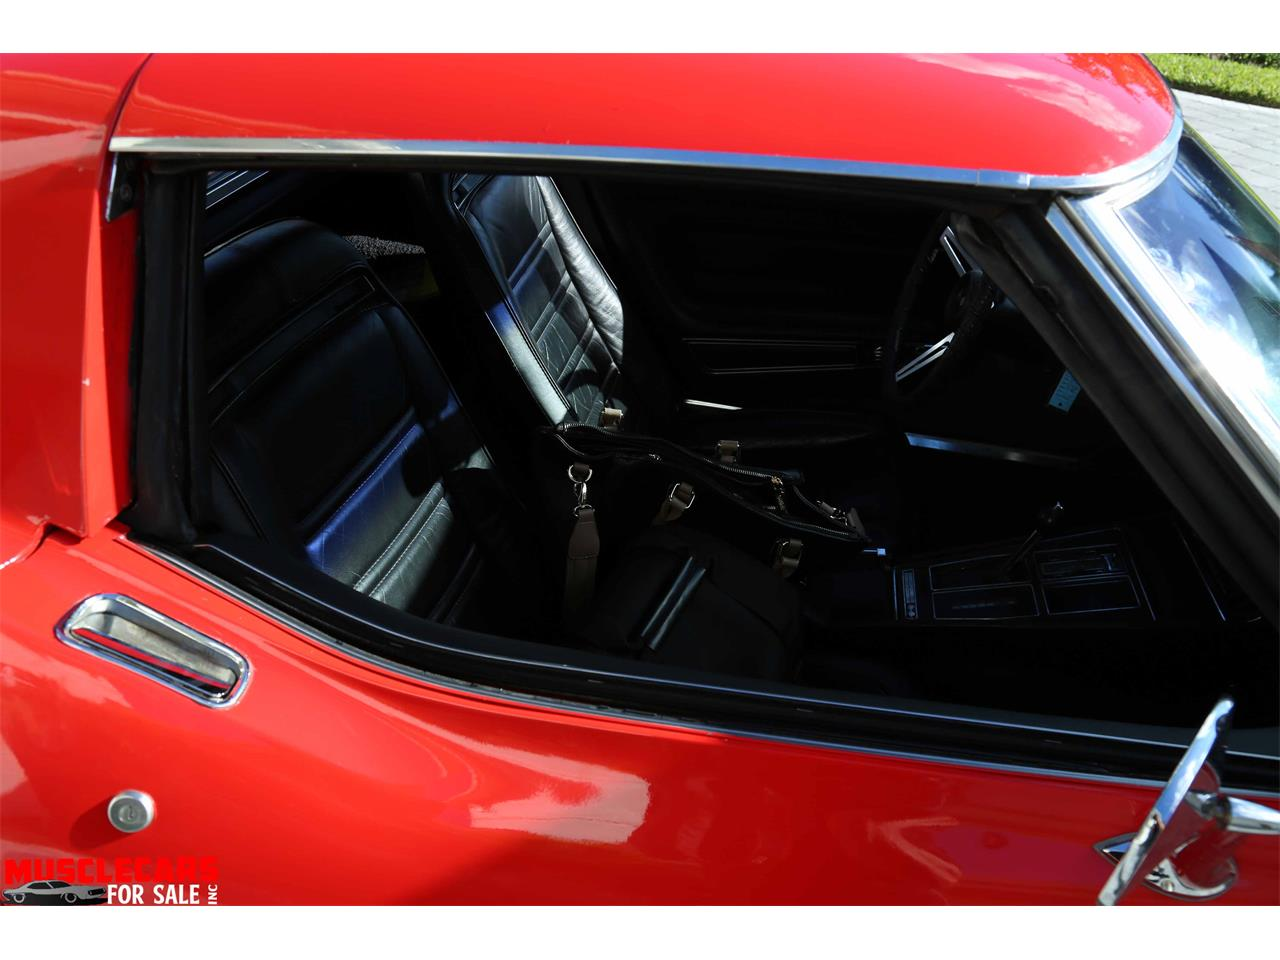 1972 Chevrolet Corvette for sale in Fort Myers, FL – photo 84